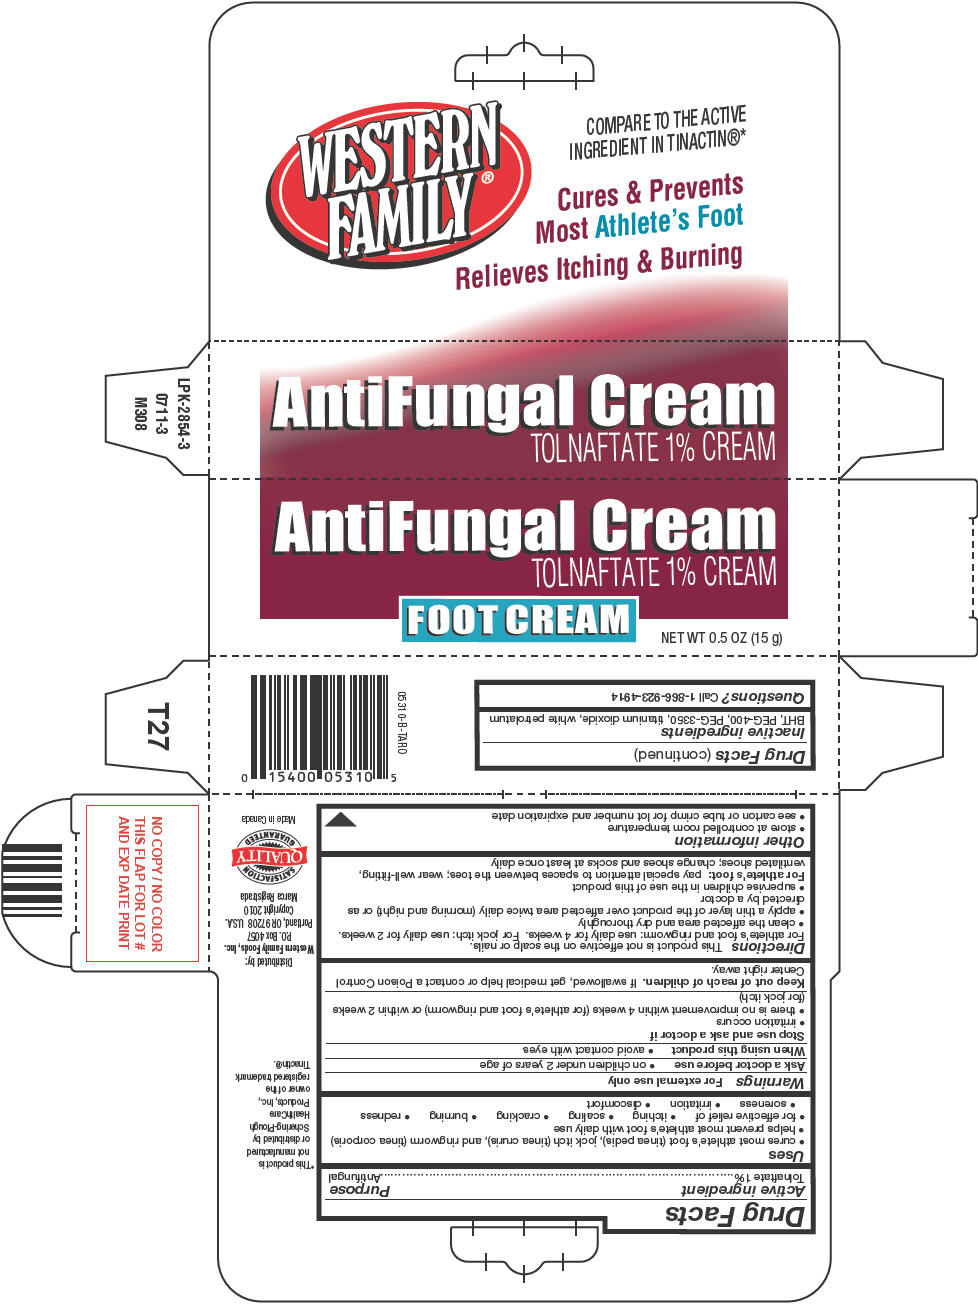 Western Family Antifungal (Tolnaftate) Cream [Western Family Foods Inc]